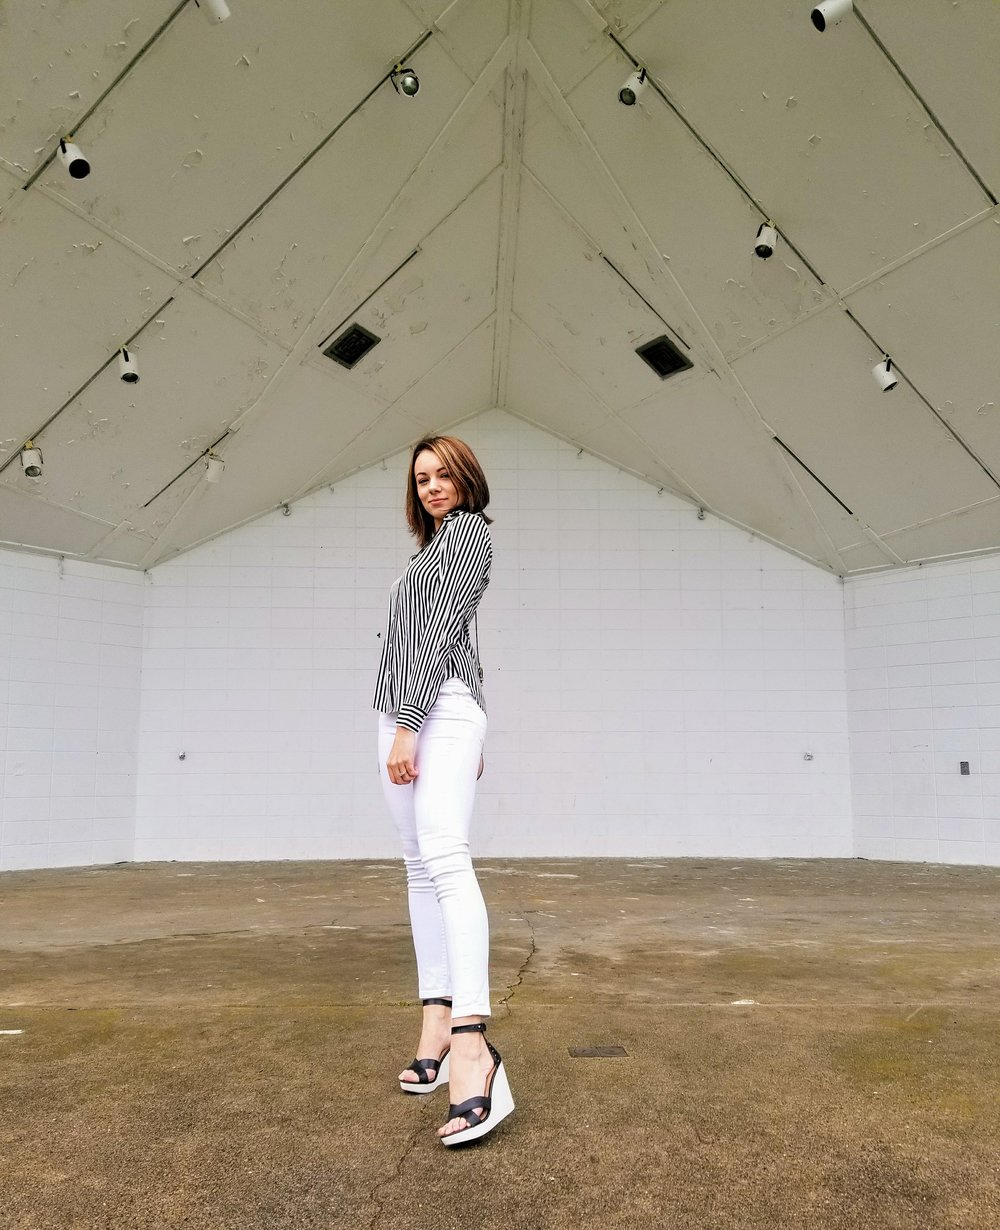 A blogger posing under a big white roof, wearing black and white outfit.